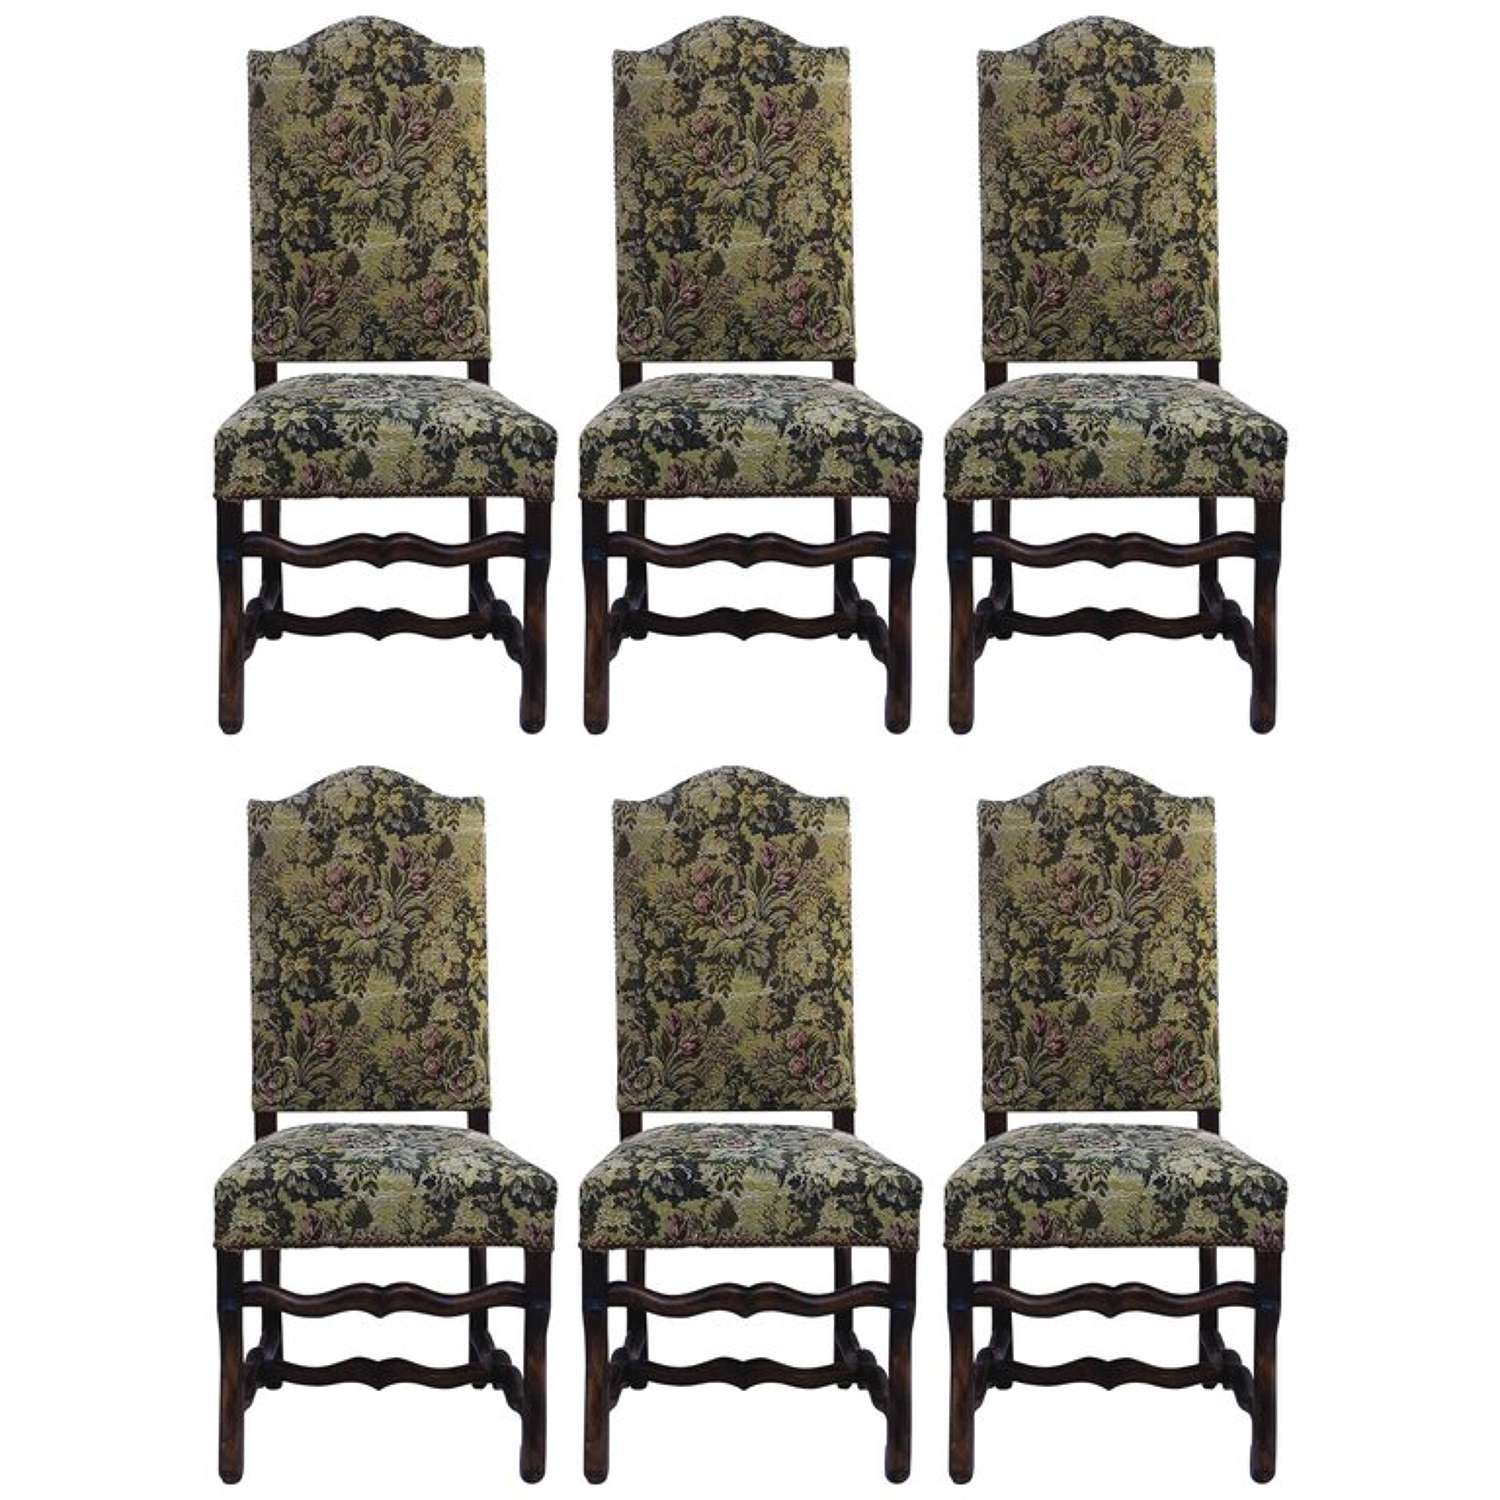 Six Dining Chairs Os de Mouton Original French Tapestry or to Recover